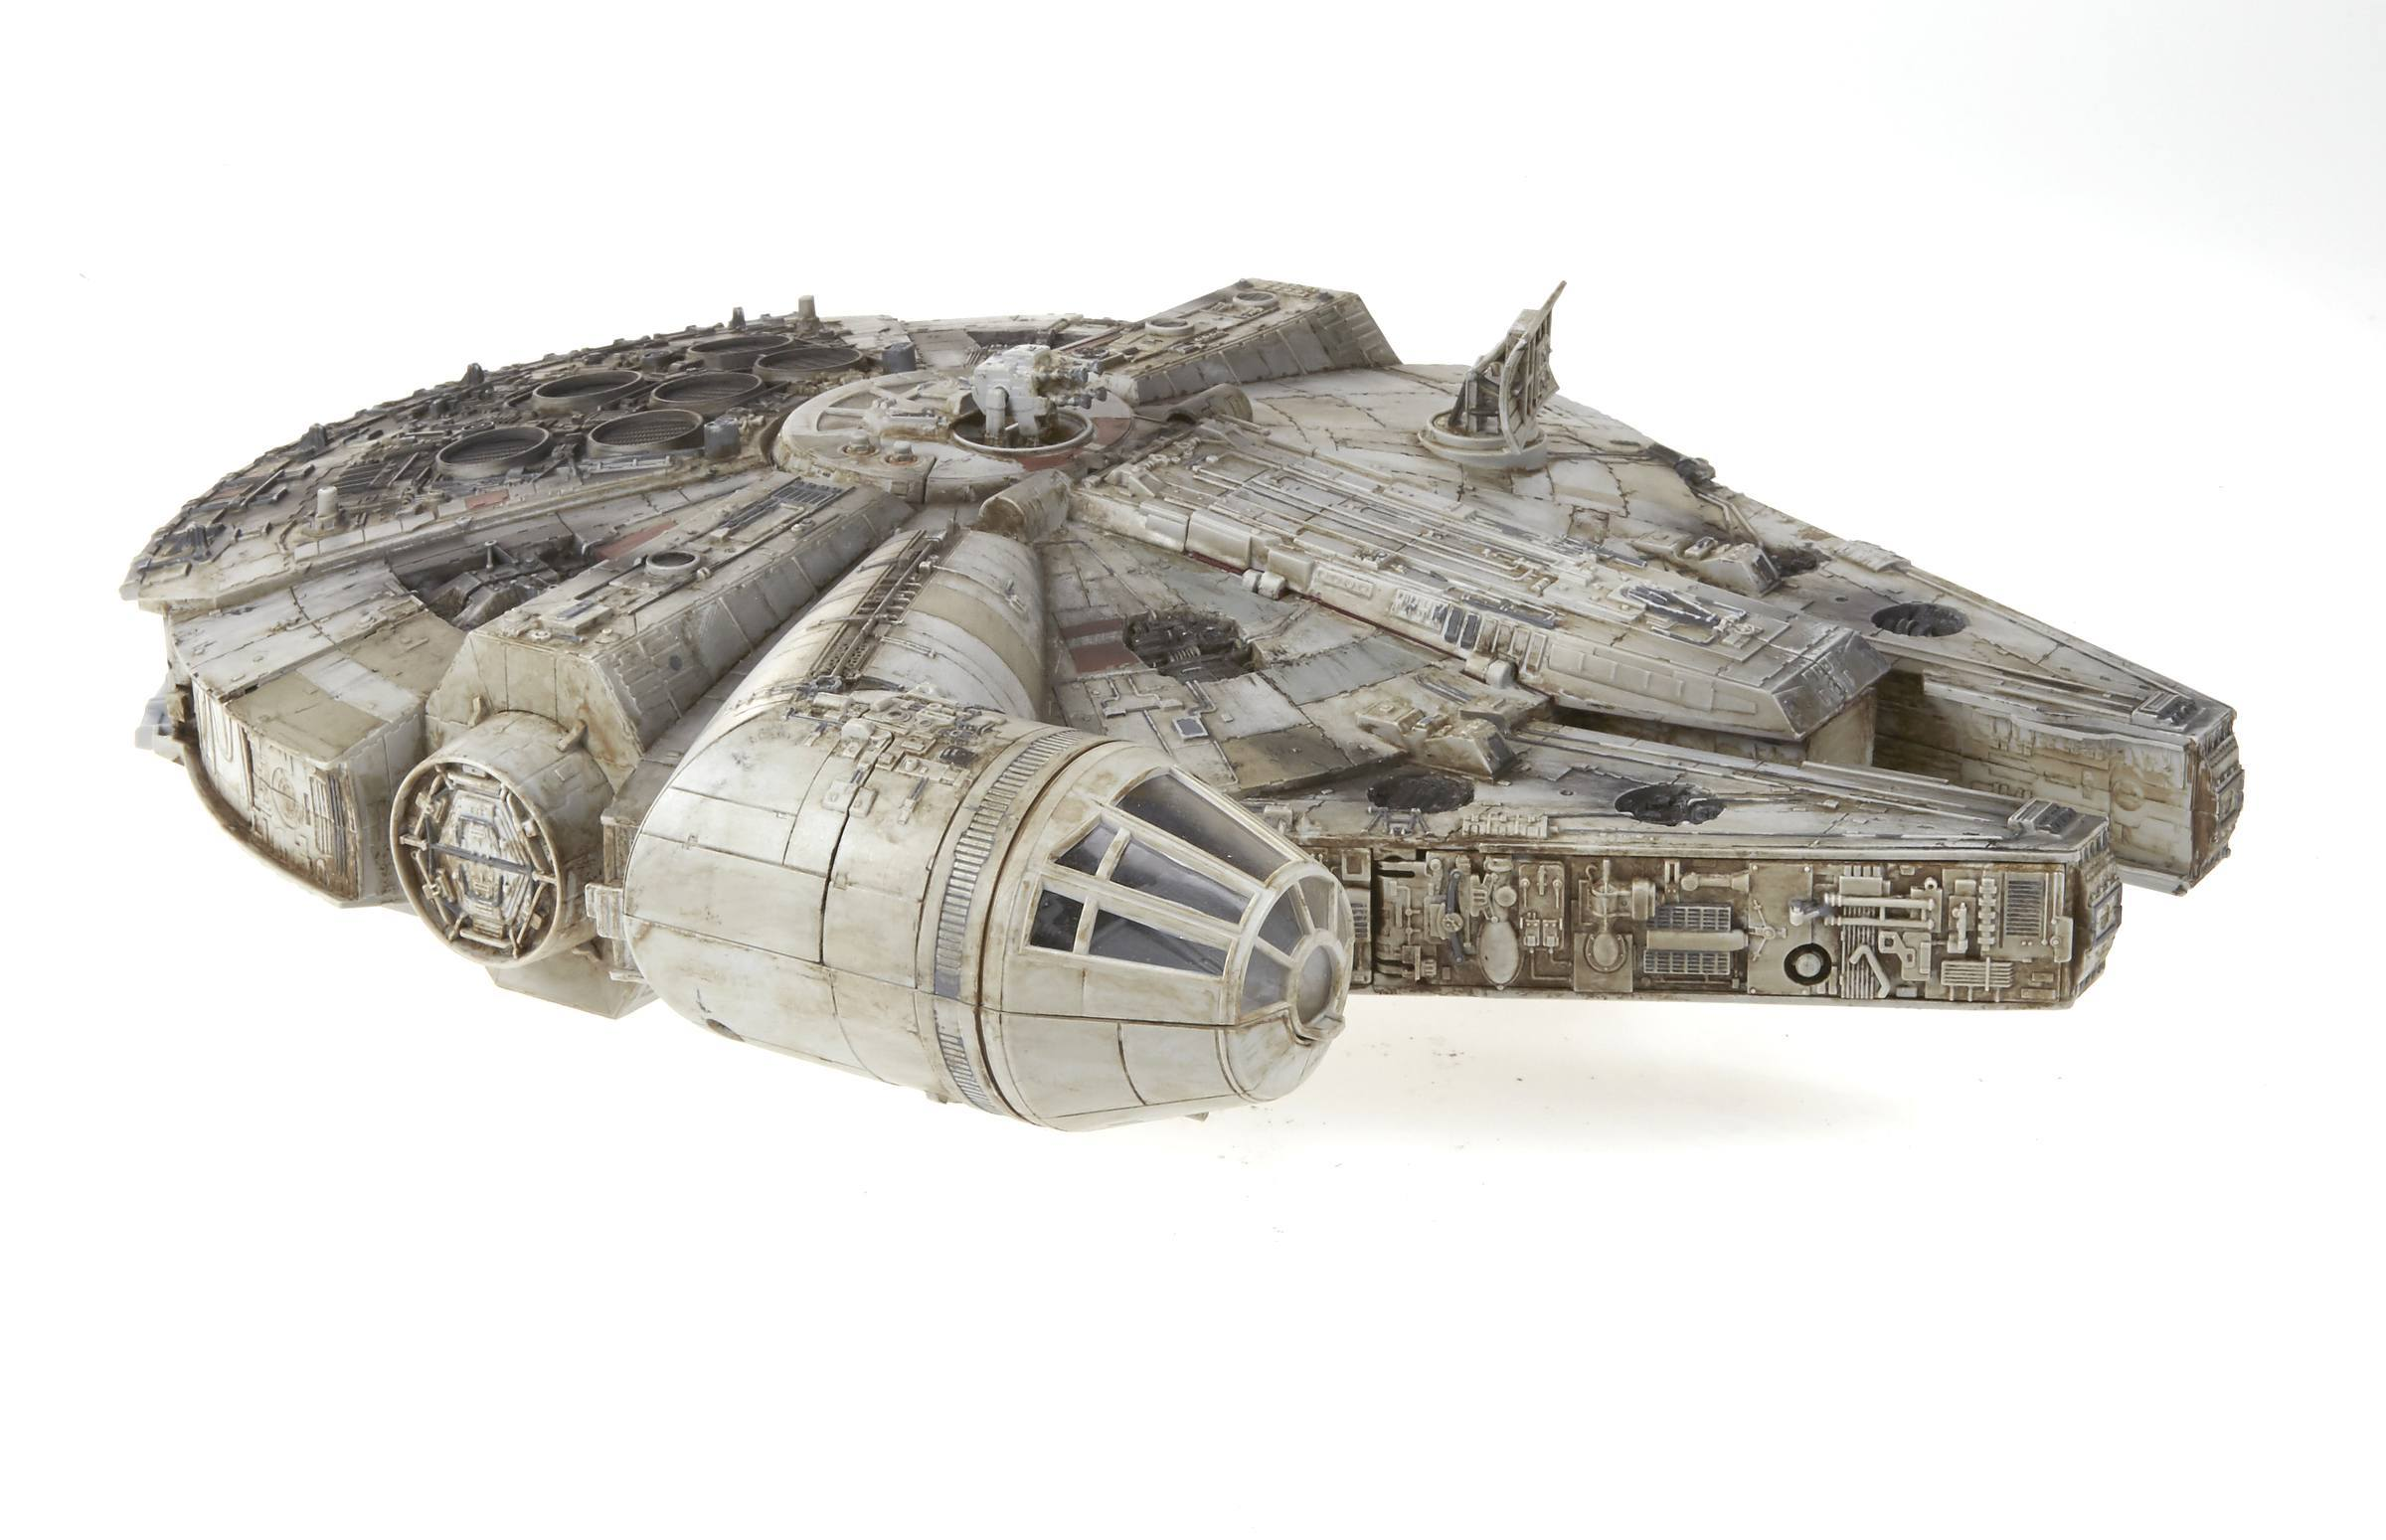 Family Calendar Digital Family Calendar Parents This Millennium Falcon Toy Is Straight Out Of Star Wars